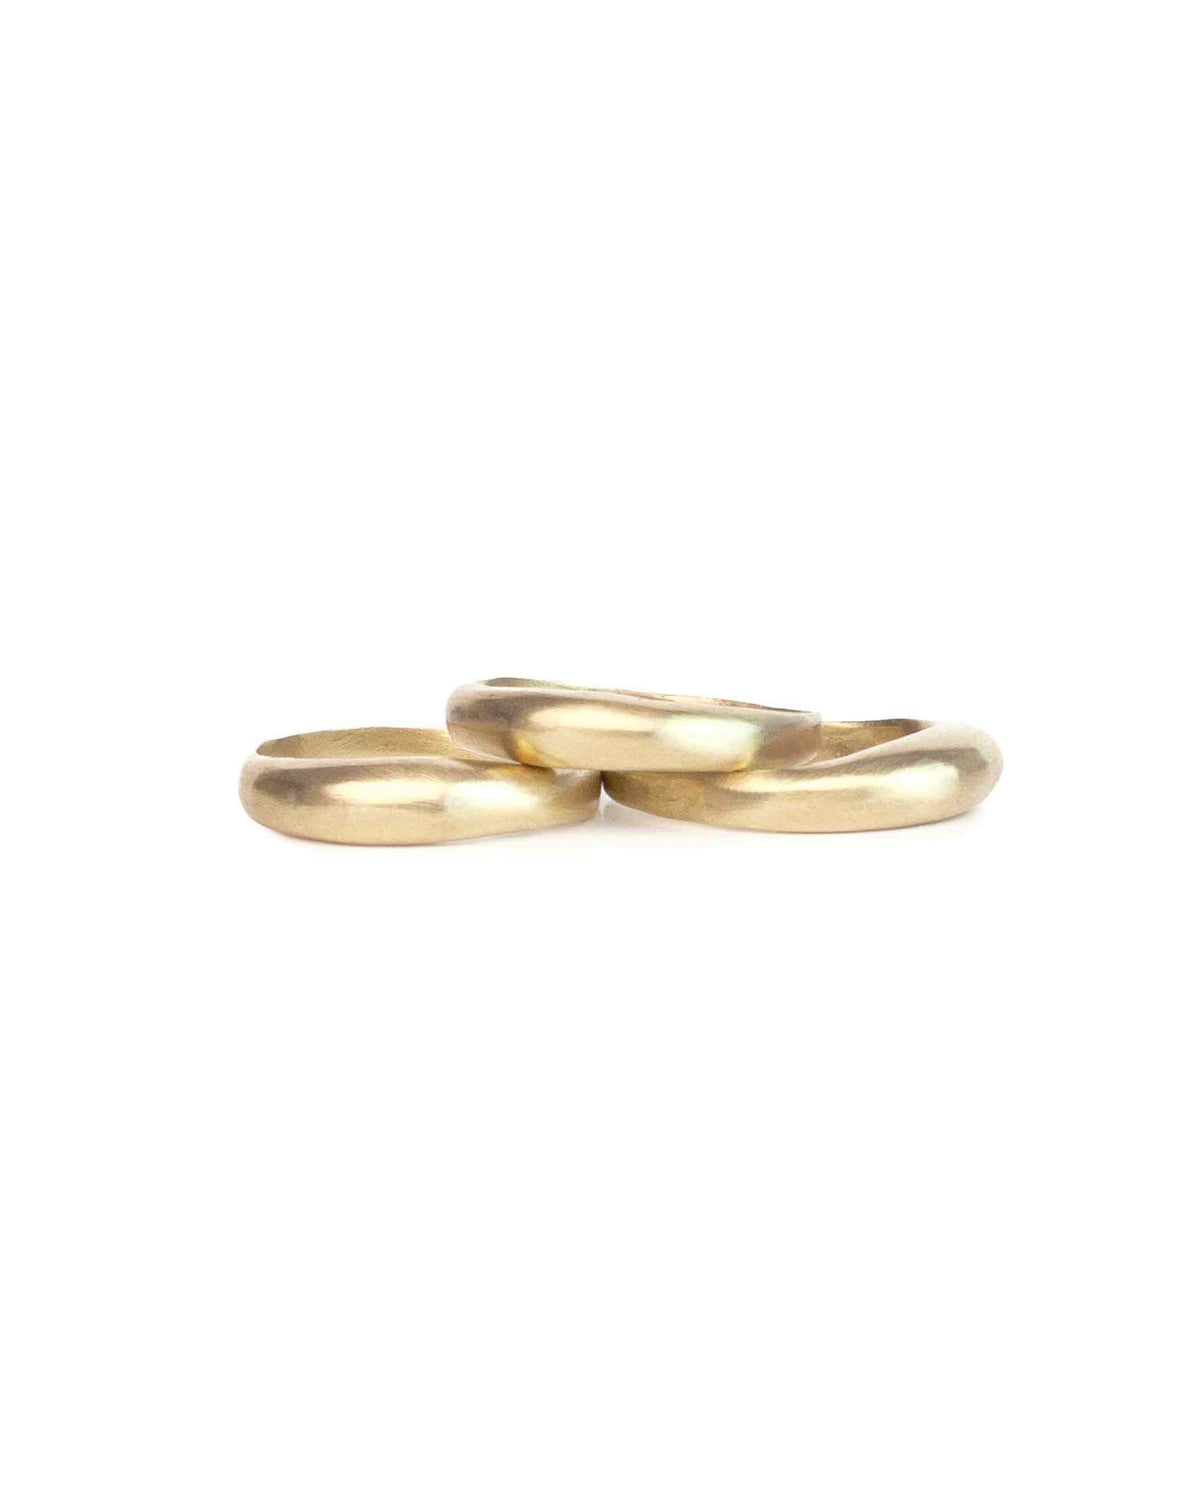 THICK ROUNDED RING